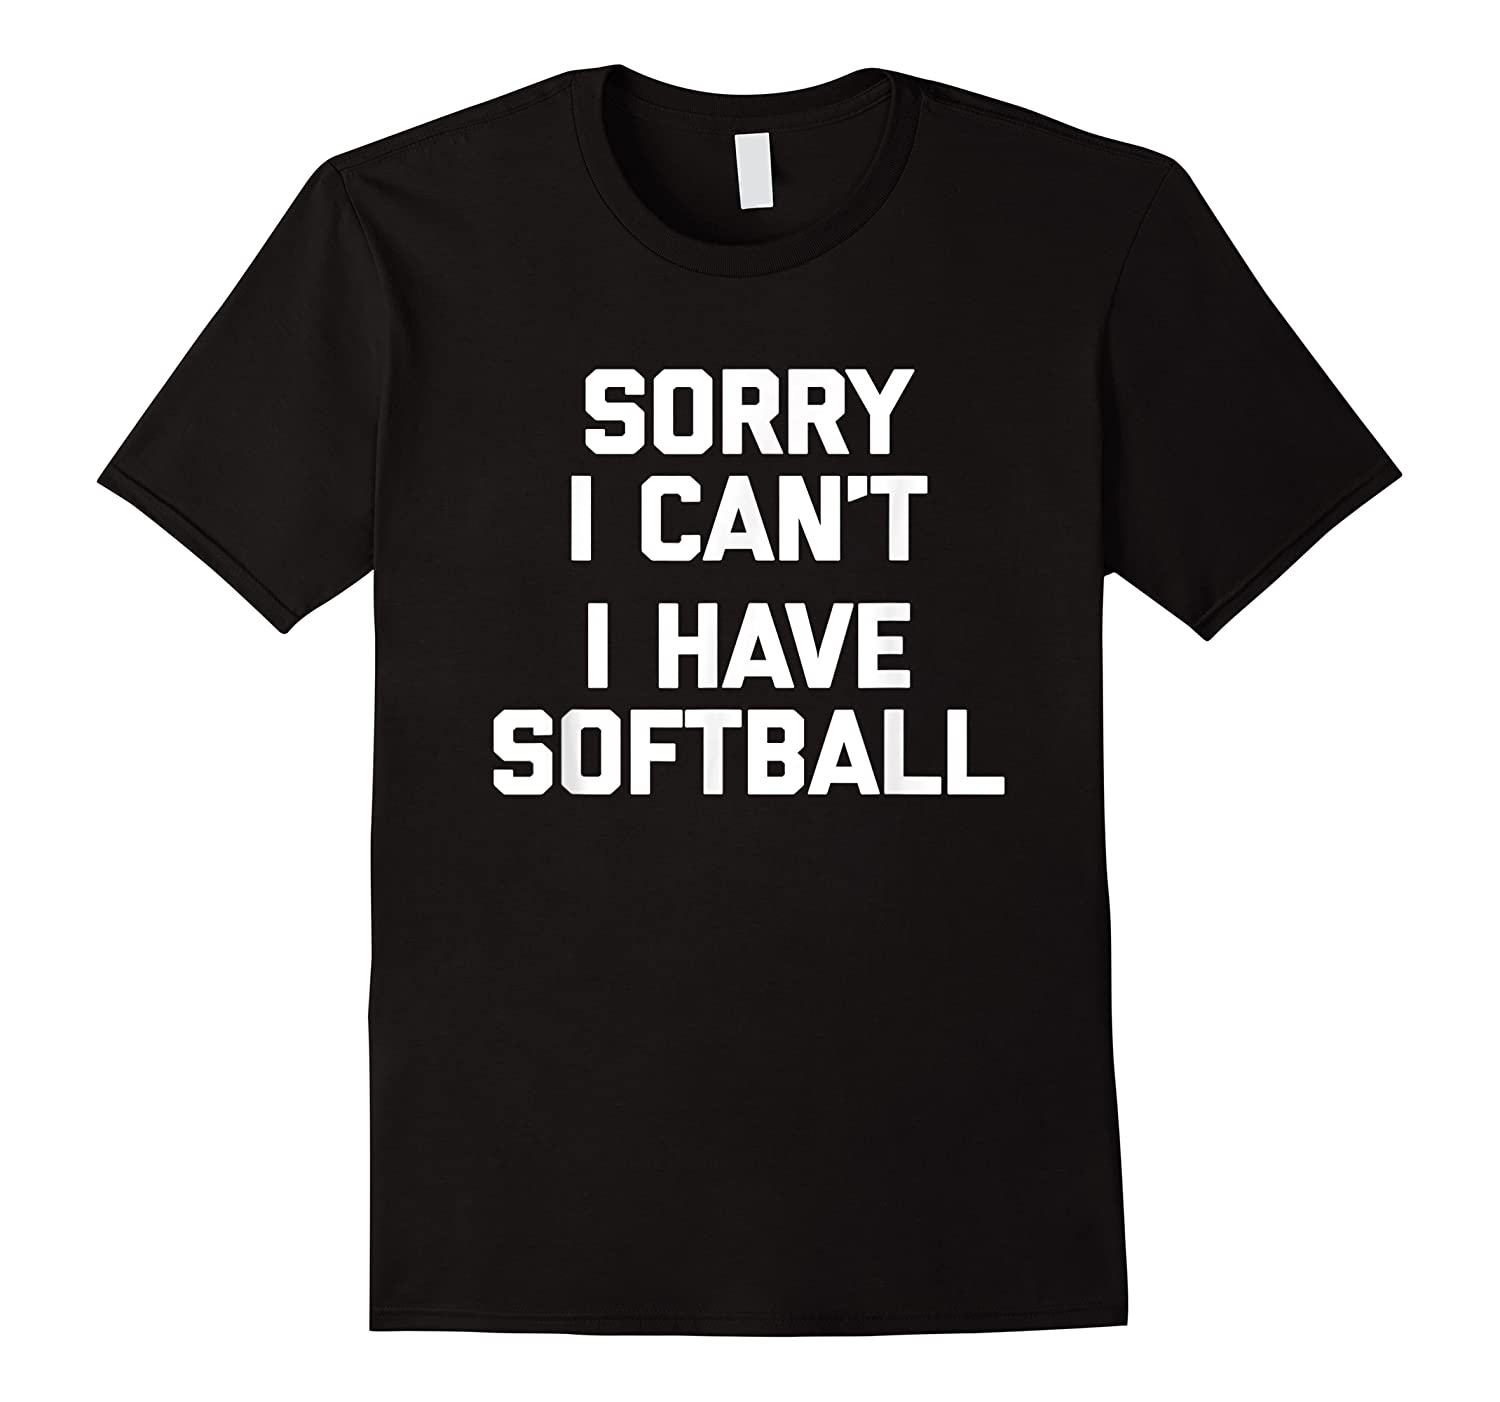 Sorry I Can't, I Have Softball Funny Saying Novelty Shirts